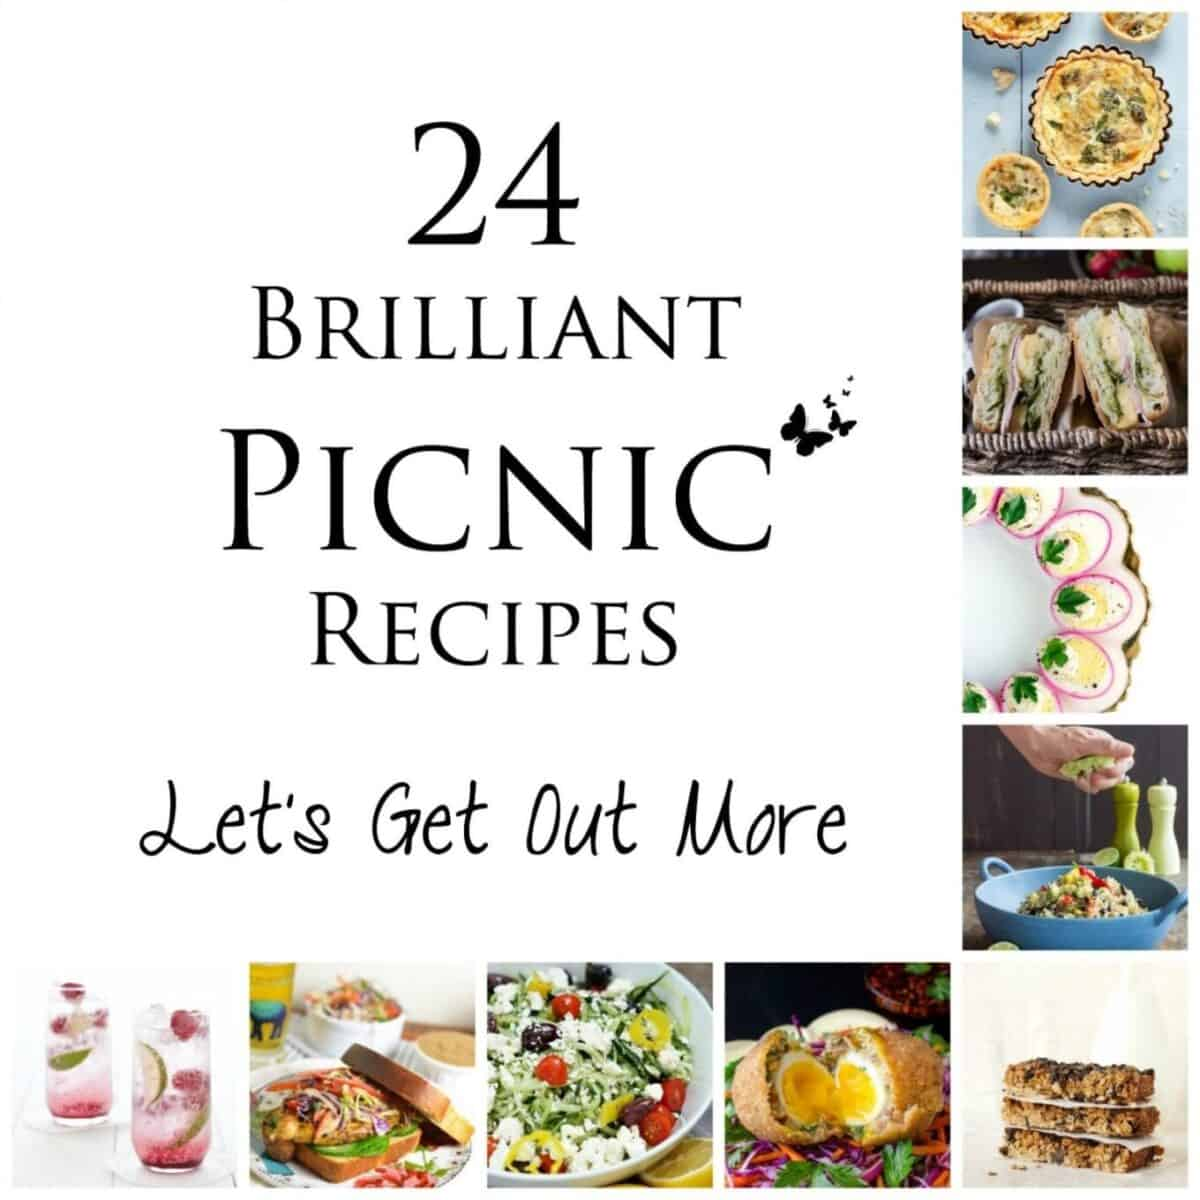 Various images of picnic suitable food with text overlay